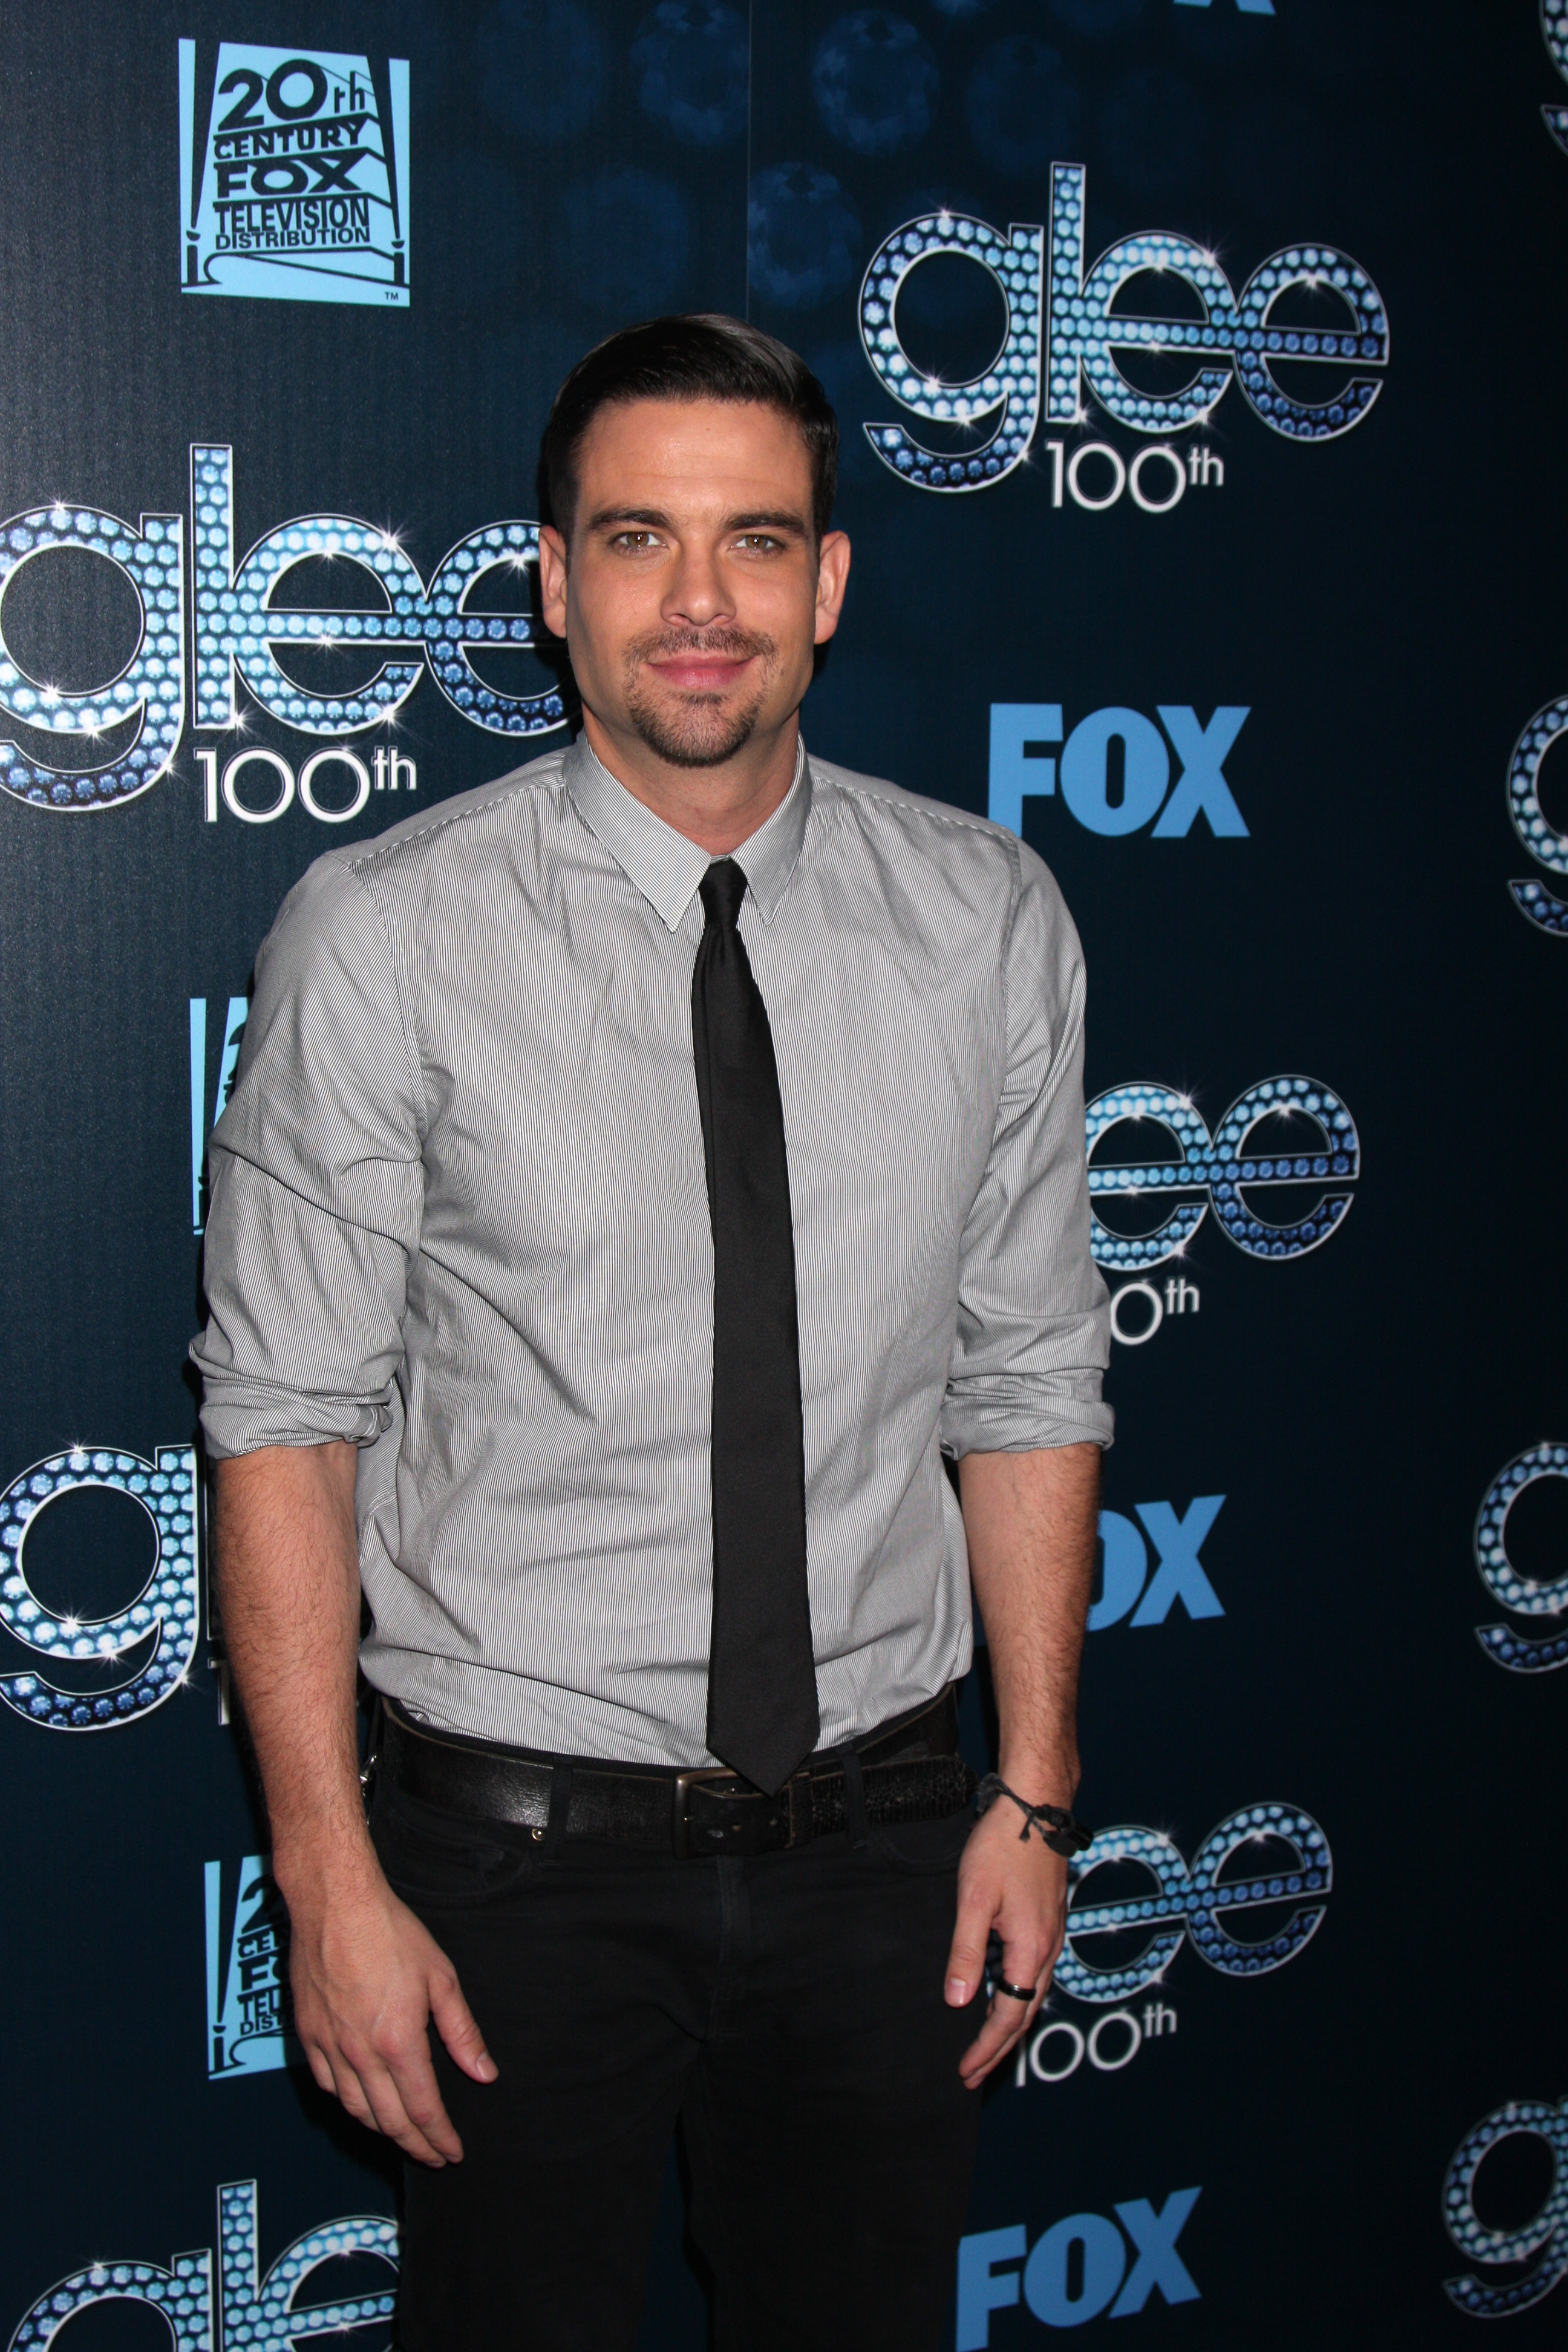 GLEE 100th Episode Party                                    Featuring: Mark Salling                  Where: West Hollywood, California, United States                  When: 19 Mar 2014                  Credit: Nikki Nelson/WENN.com